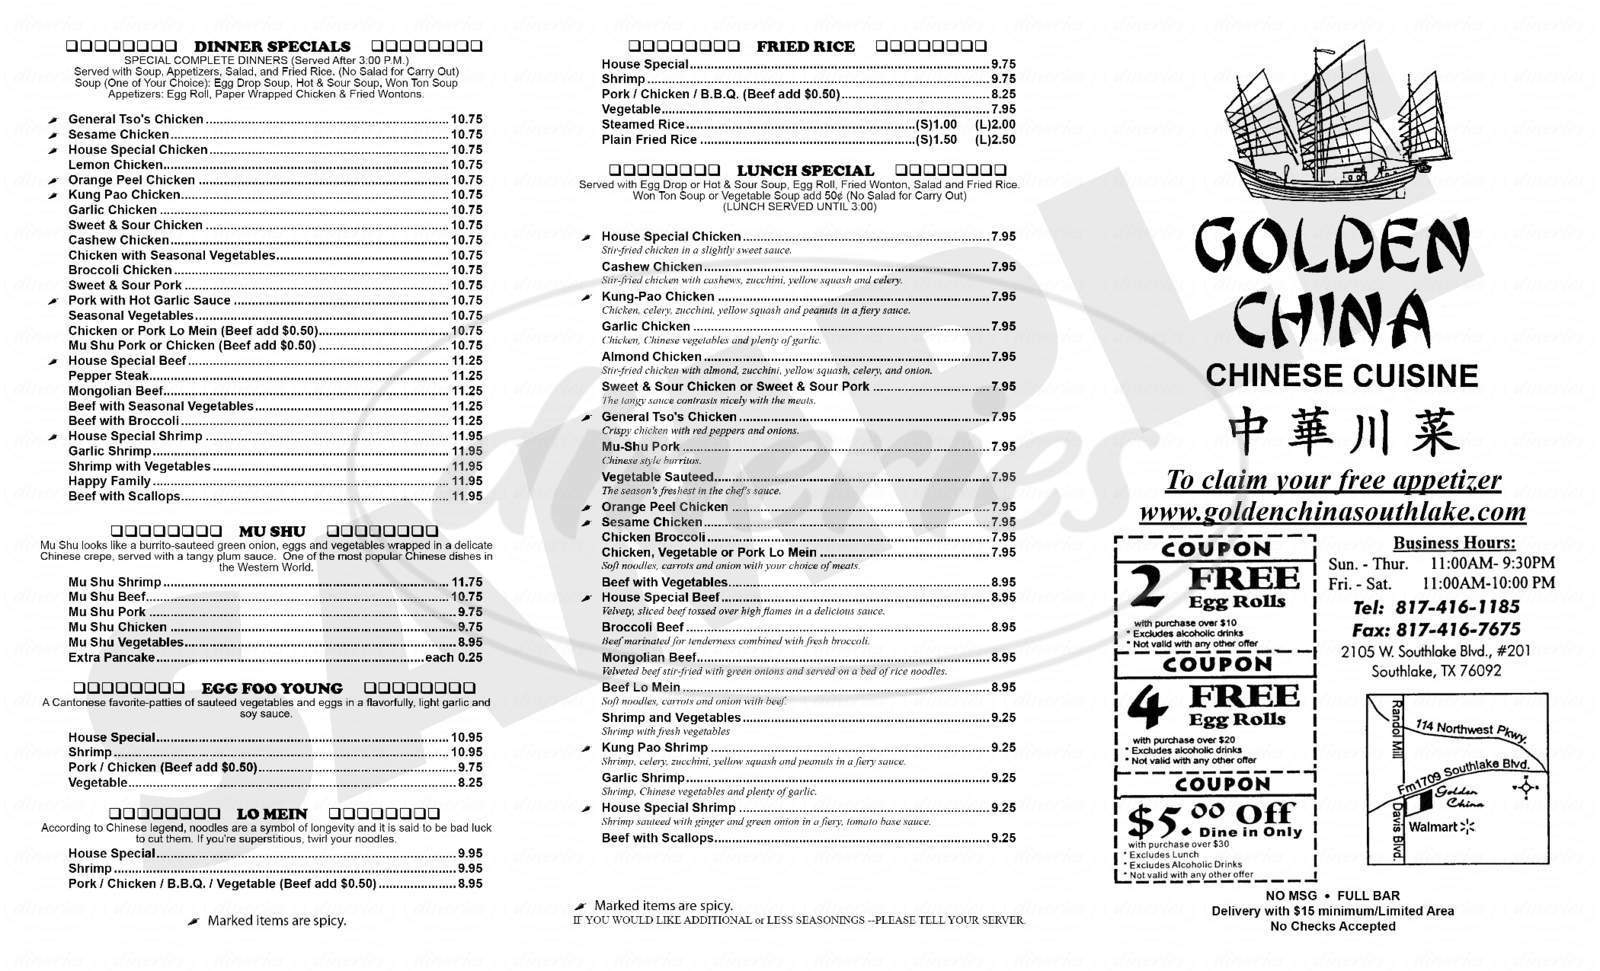 menu for Golden China